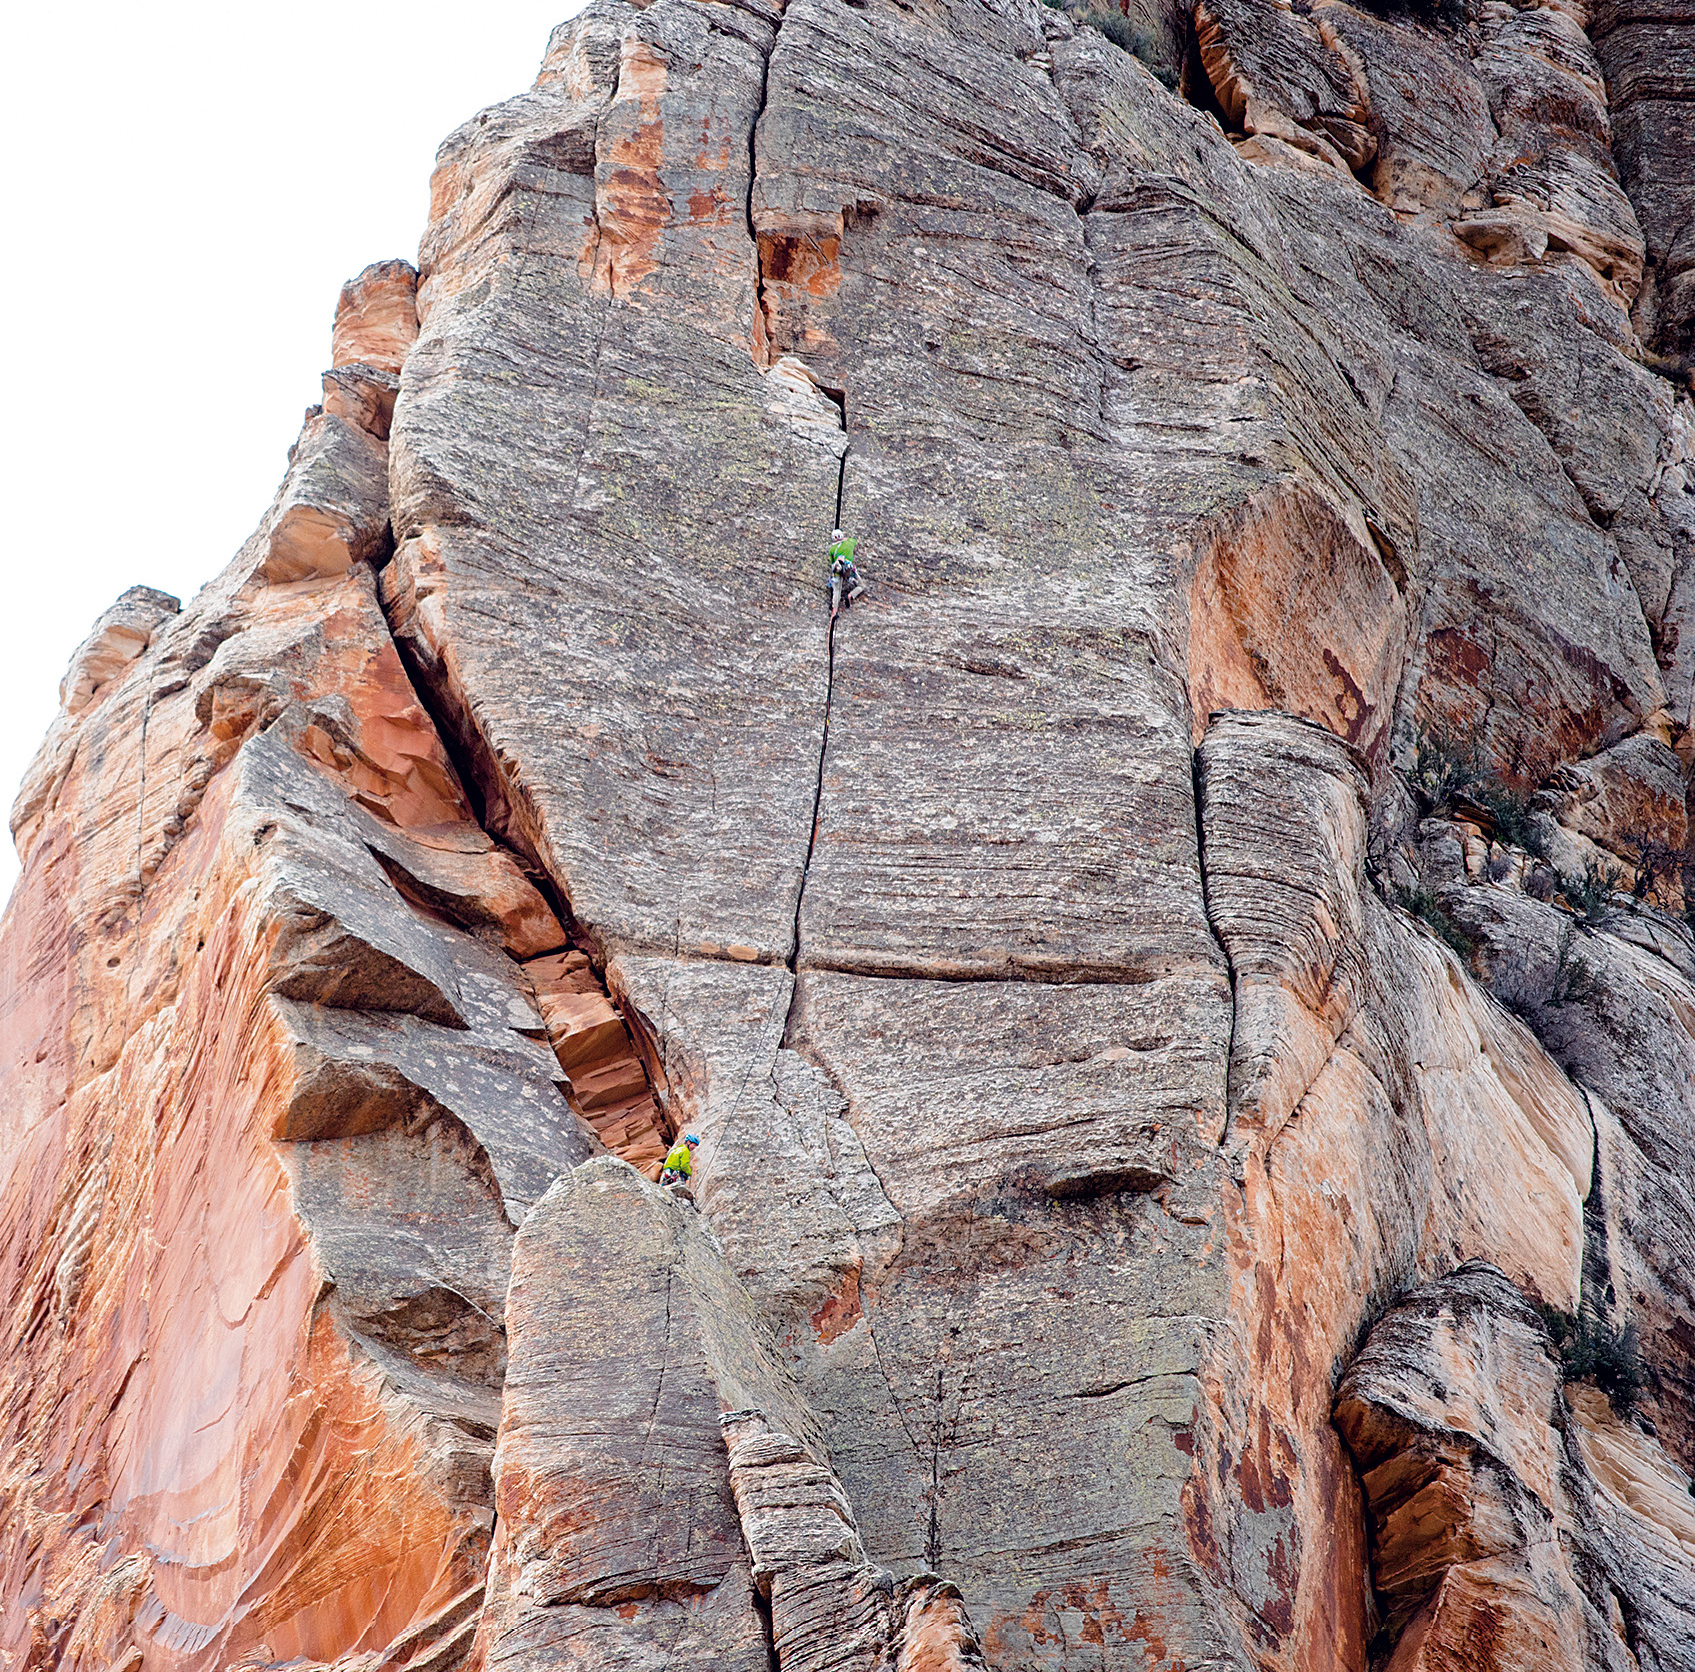 Snyder and Harrison on Screaming Sky Crack, Zoroaster Temple. [Photo] Blake McCord